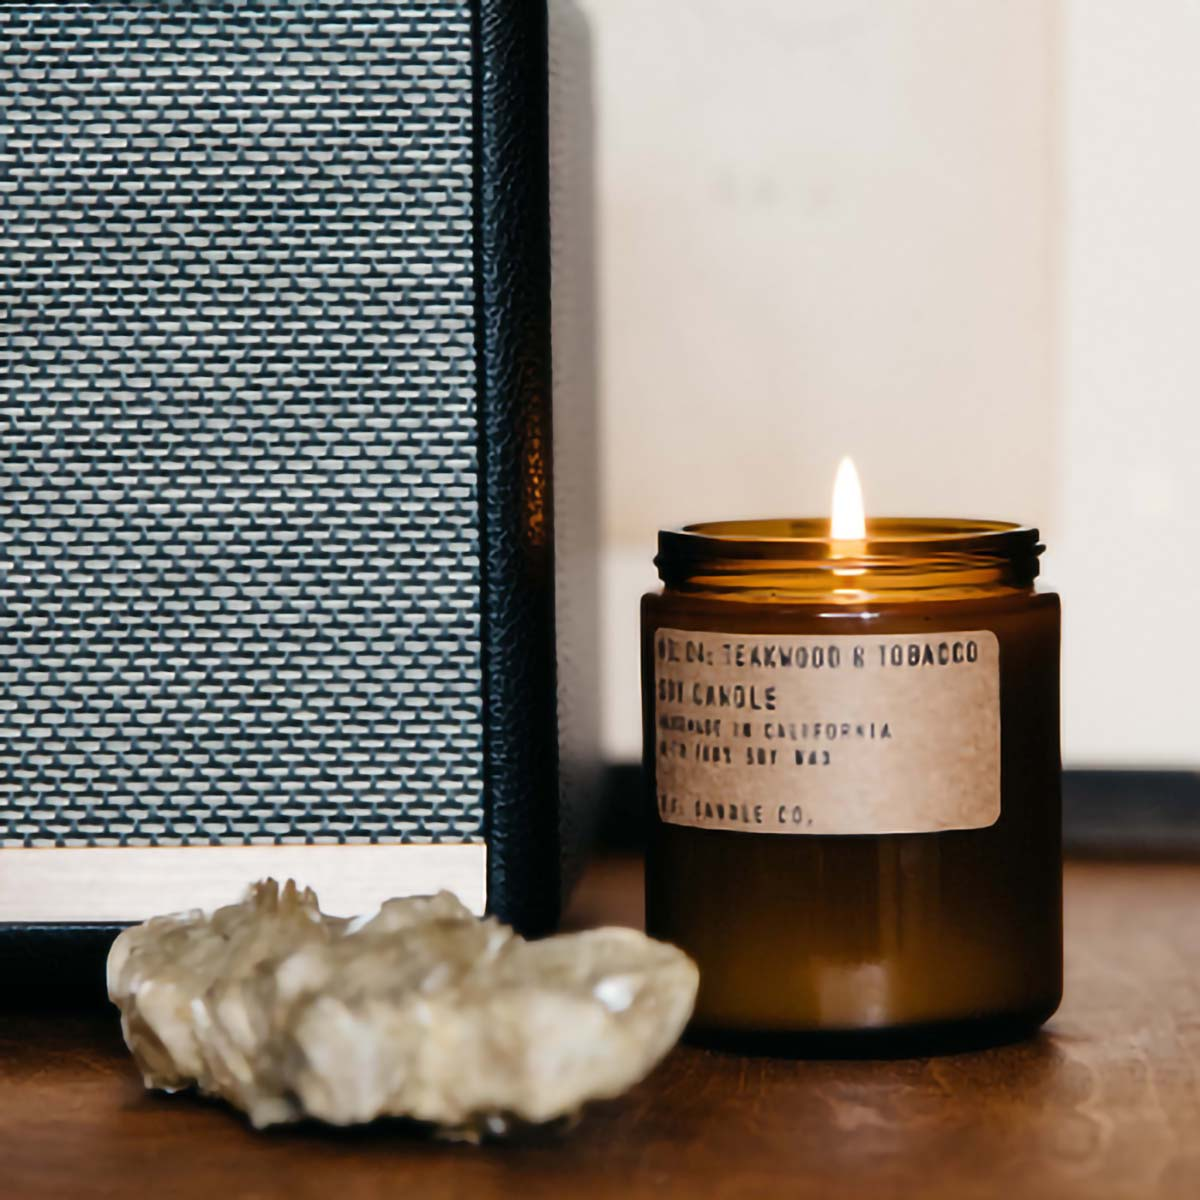 Teakwood & Tobacco Candle P.F Candle Co